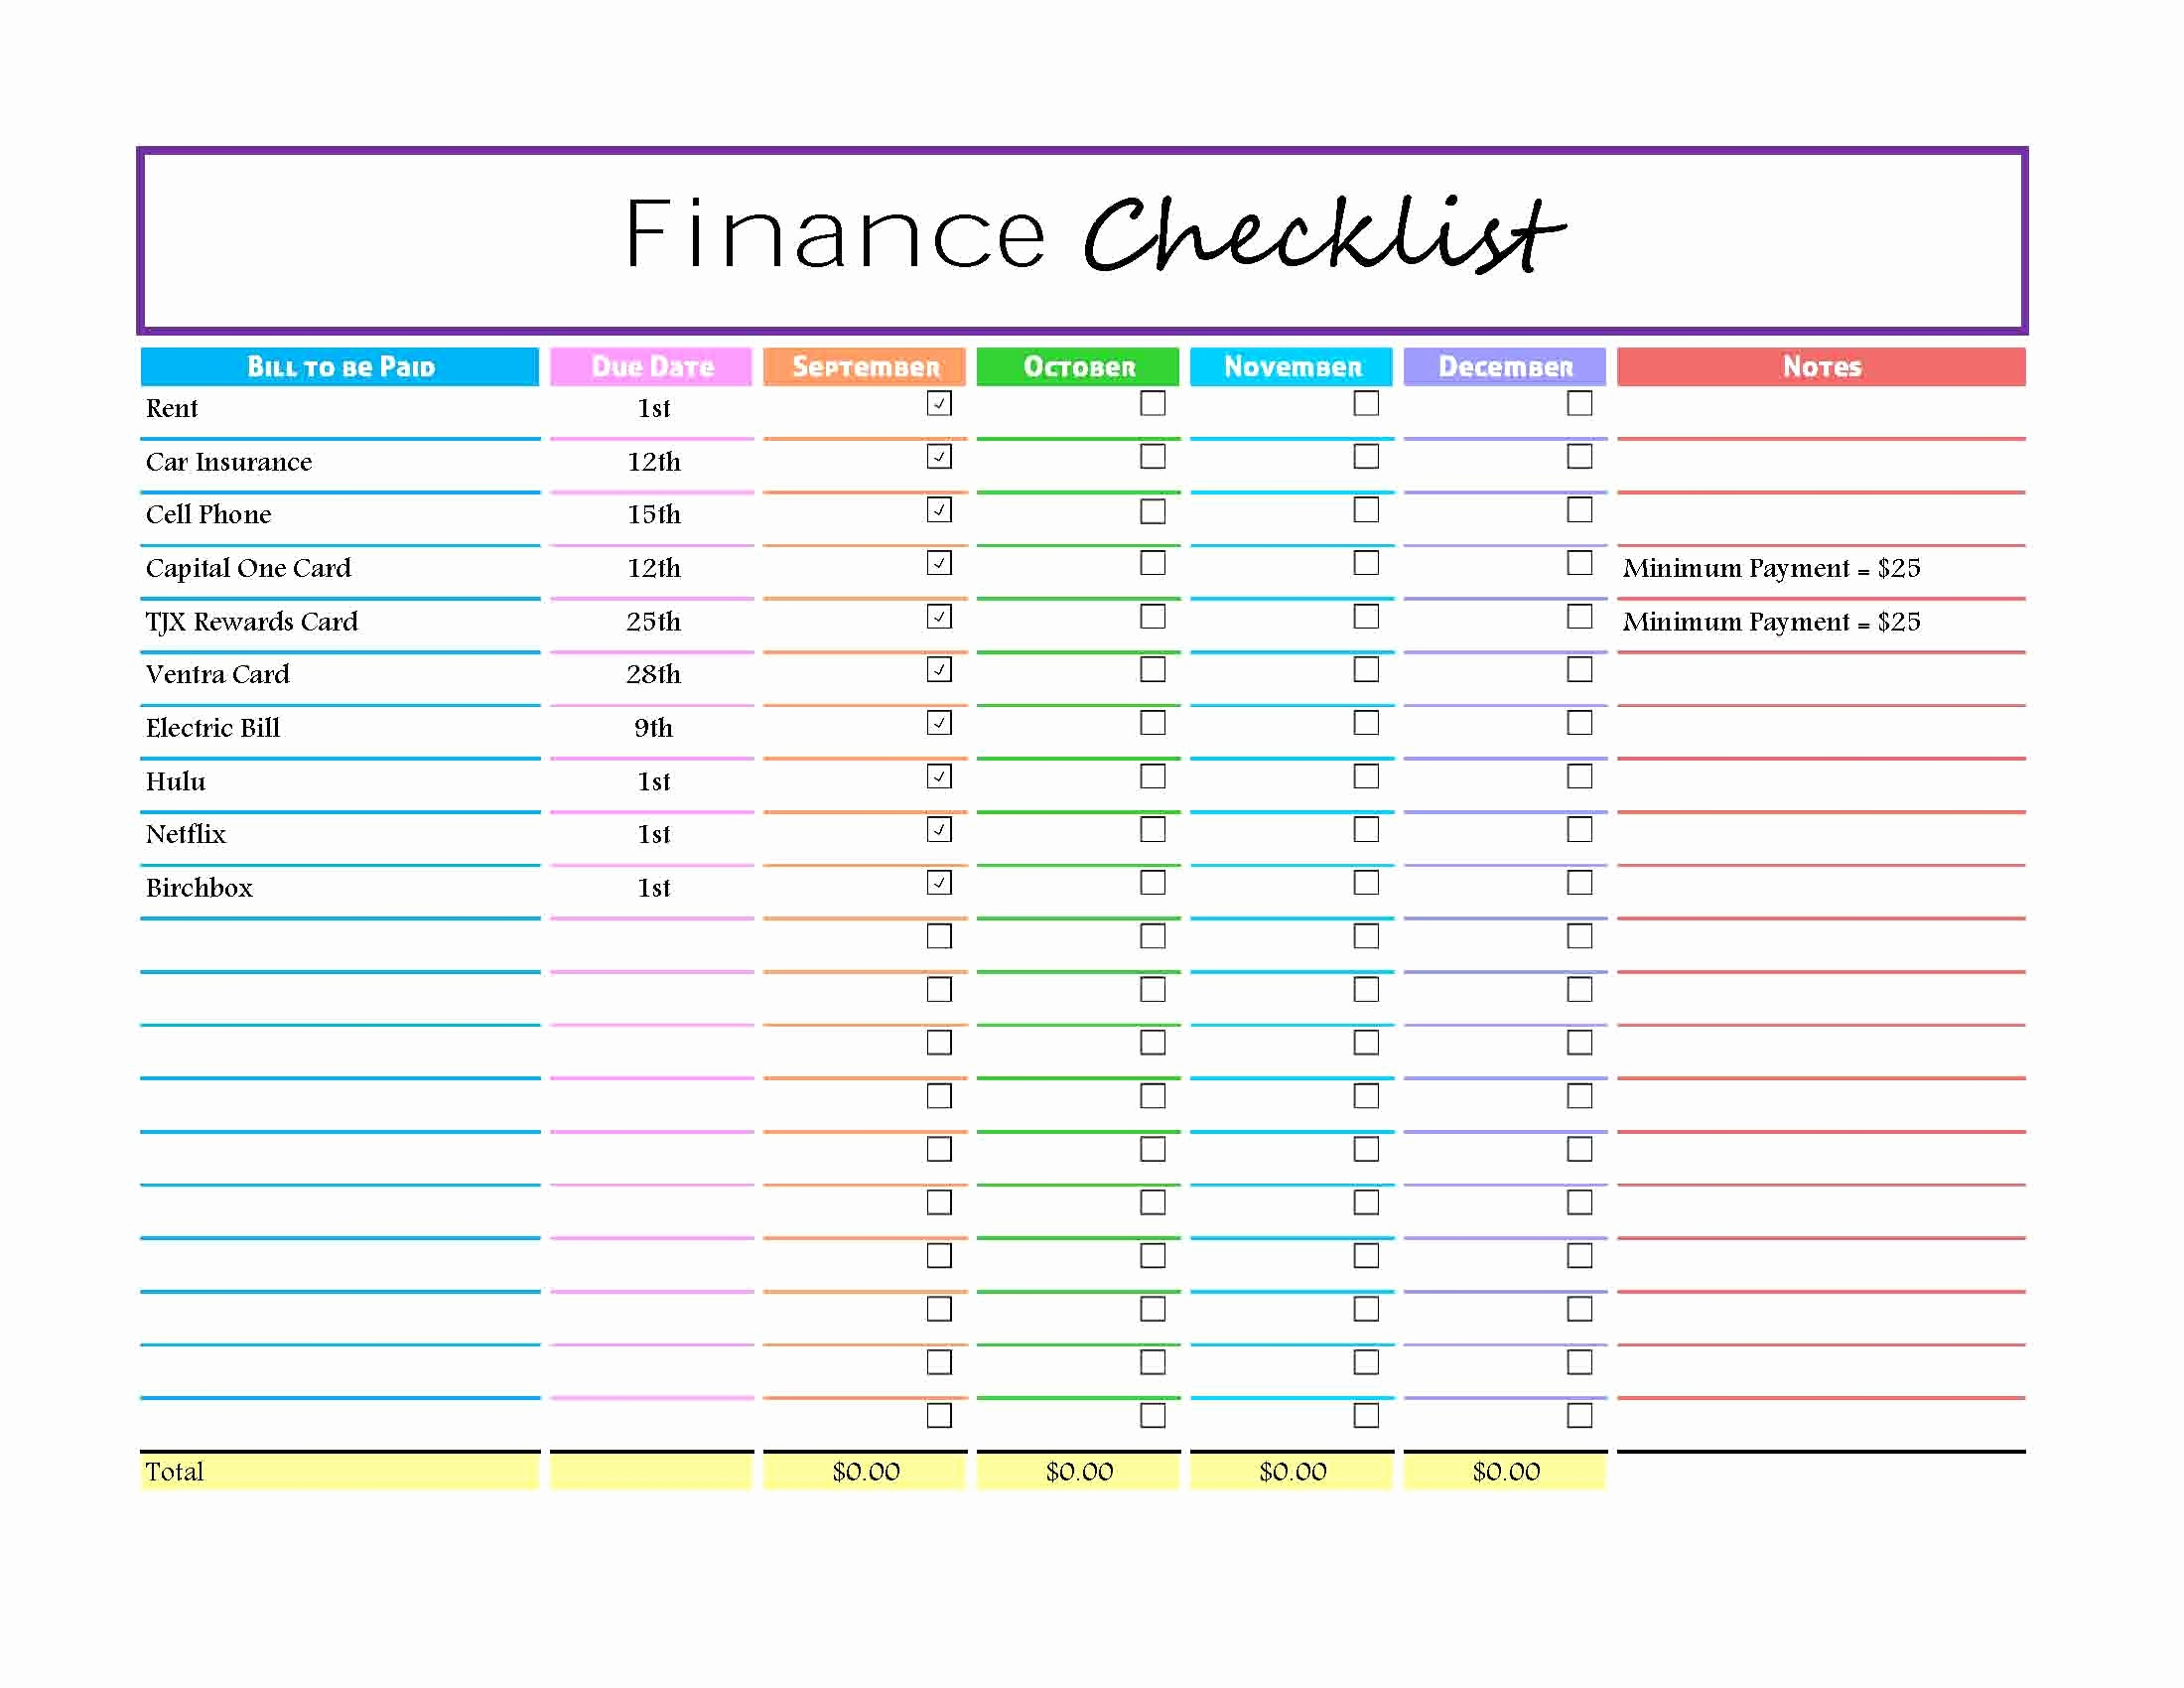 45 New Image Of Accounting Month End Close Checklist | Resume Layout Within Monthly Accounting Checklist Template Monthly Accounting Checklist Template Spreadsheet Templates for Busines Spreadsheet Templates for Busines monthly bookkeeping checklist template